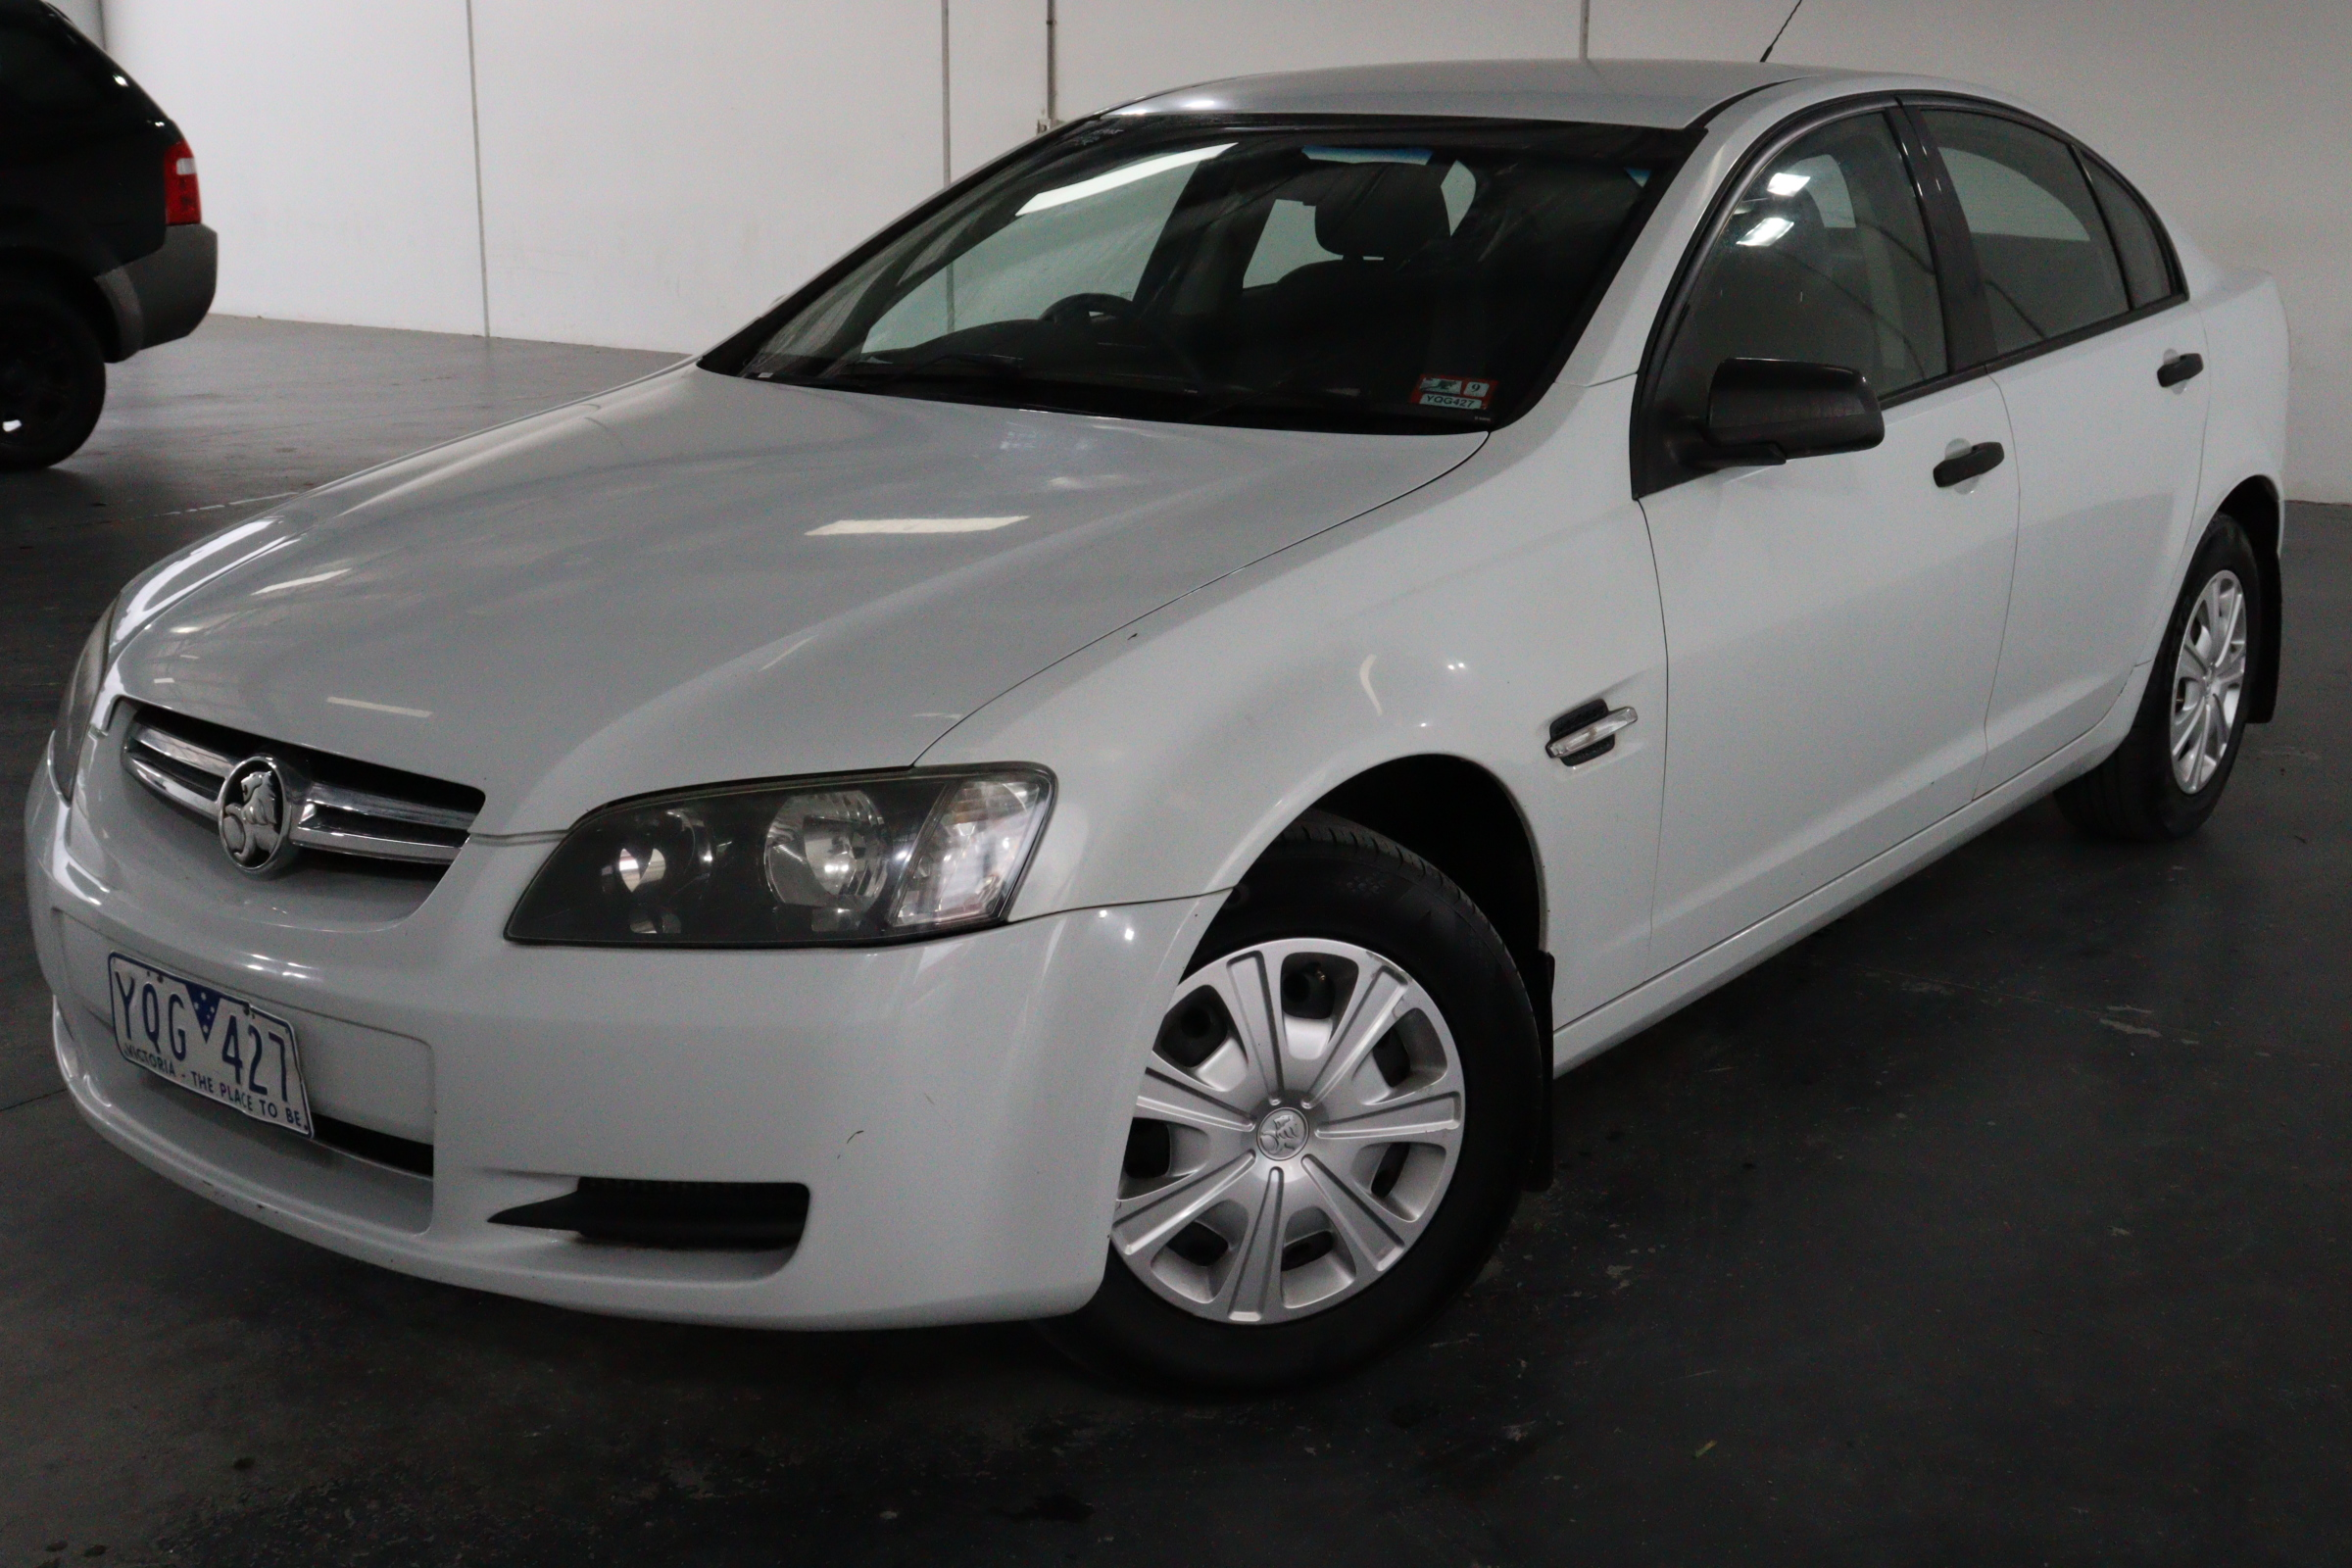 2007 Holden Commodore Omega VE Automatic Sedan